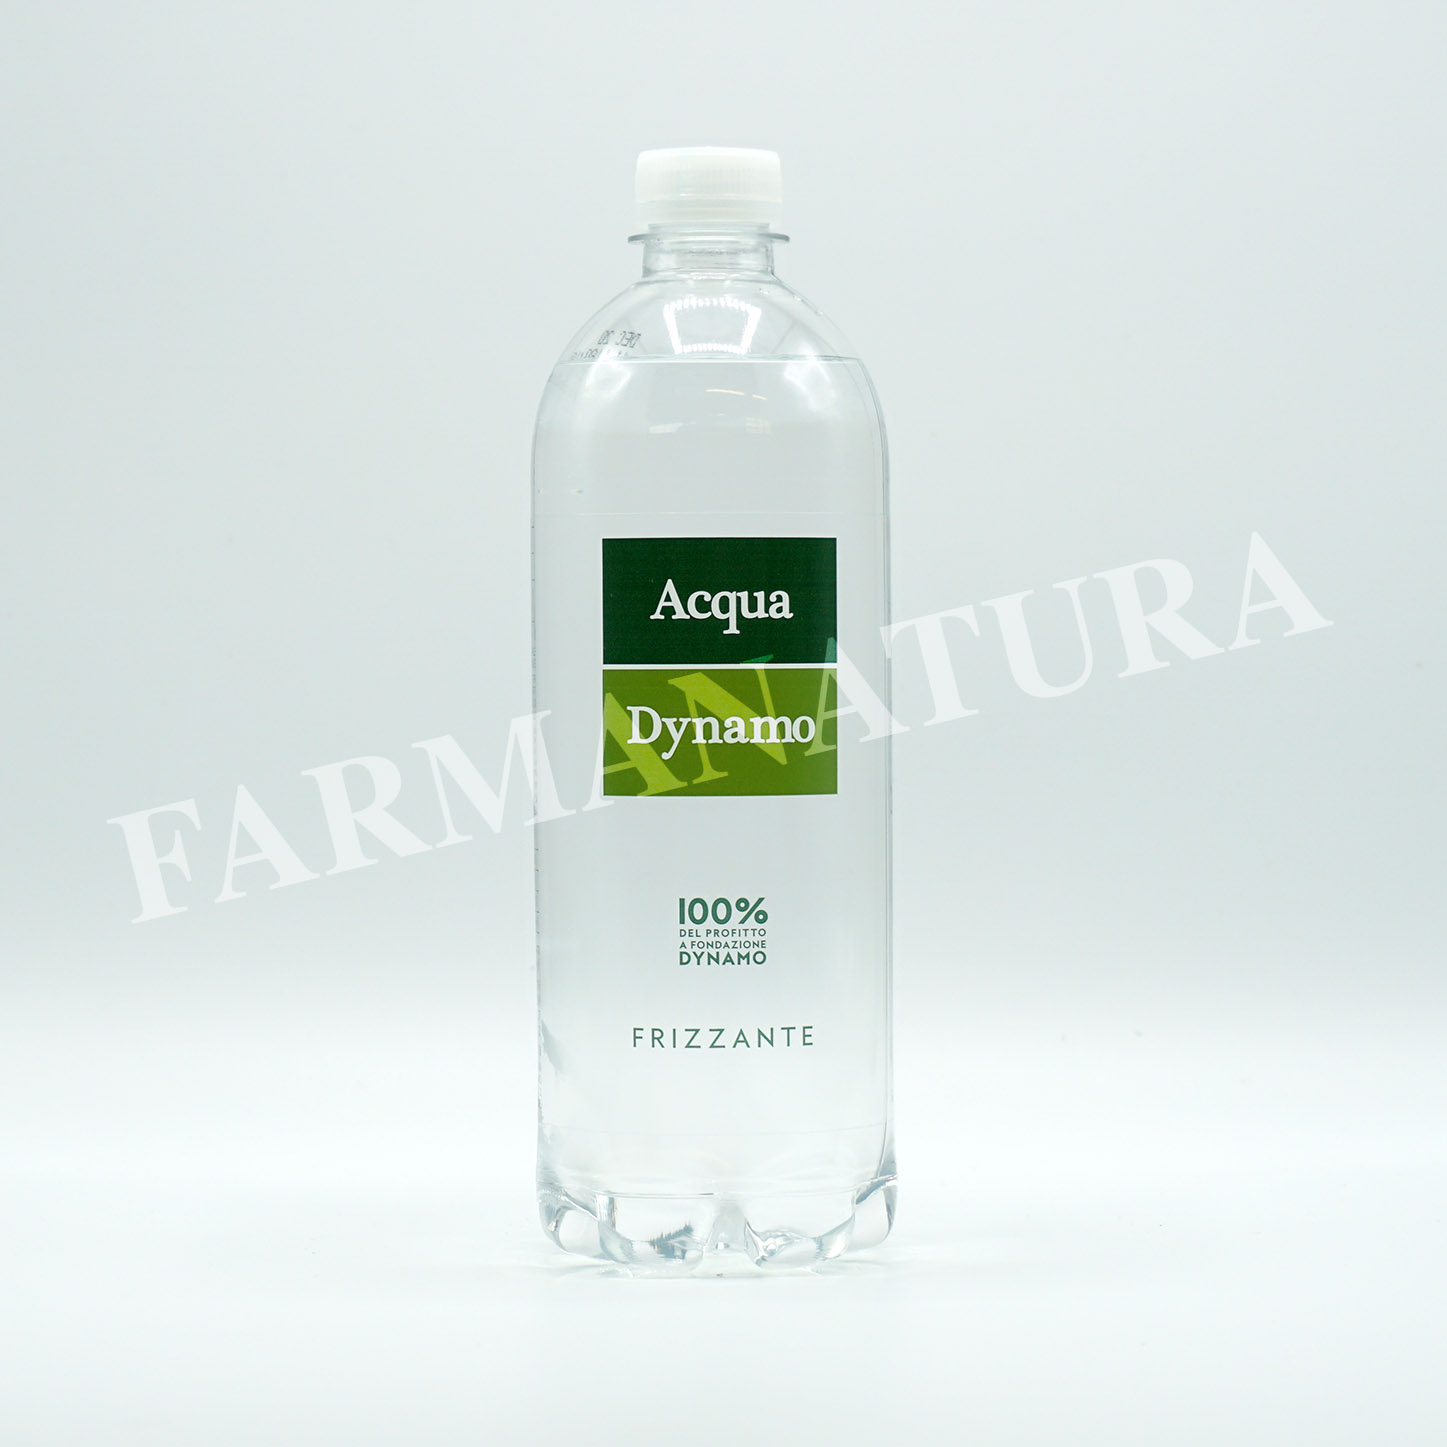 Acqua Dynamo Frizzante 700Ml Ph8.4